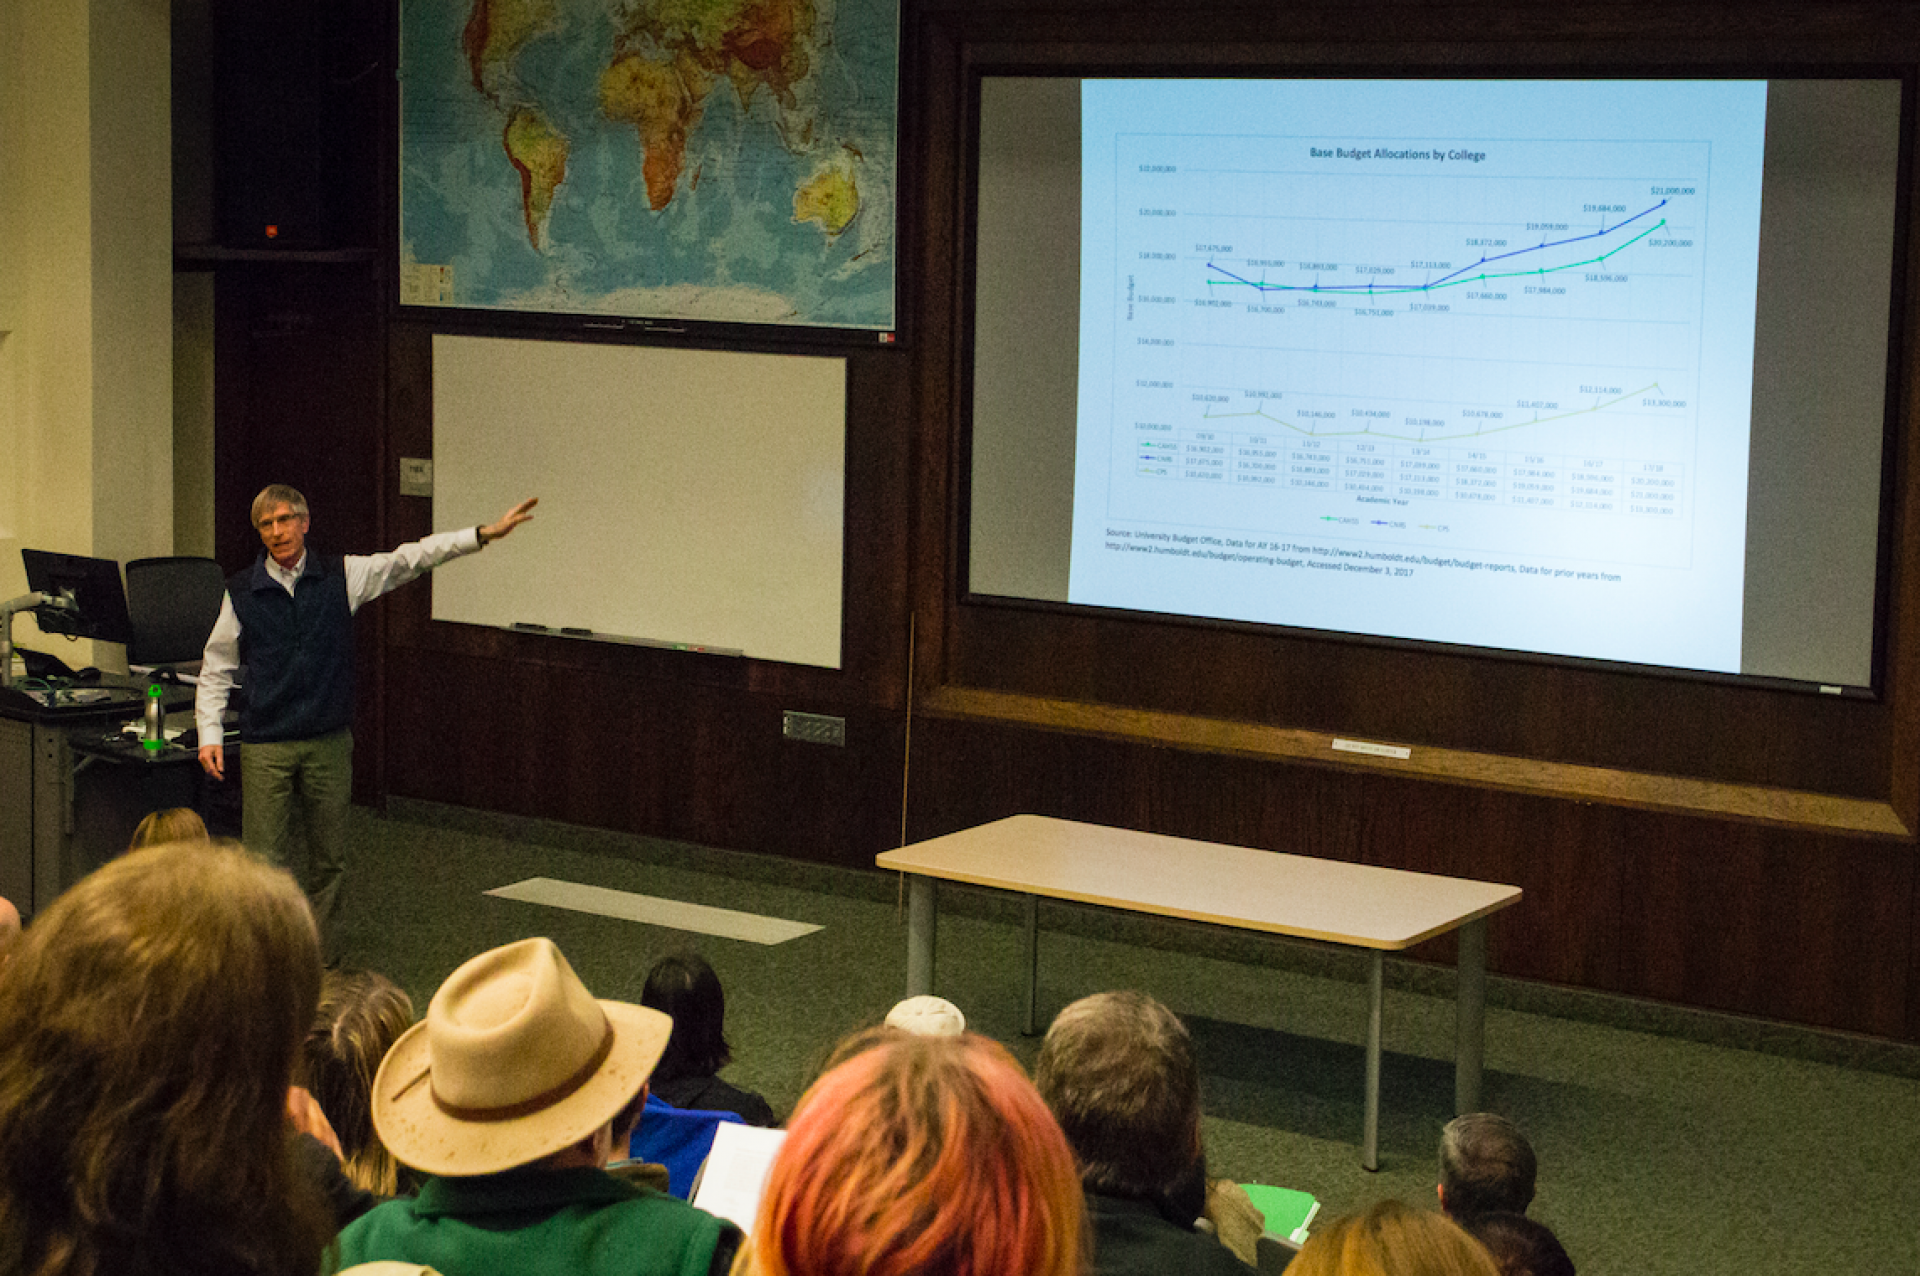 Richard Boone speaks at College of the Natural Resources and Sciences budget forum on March 1. Photo by Nick Kemper.